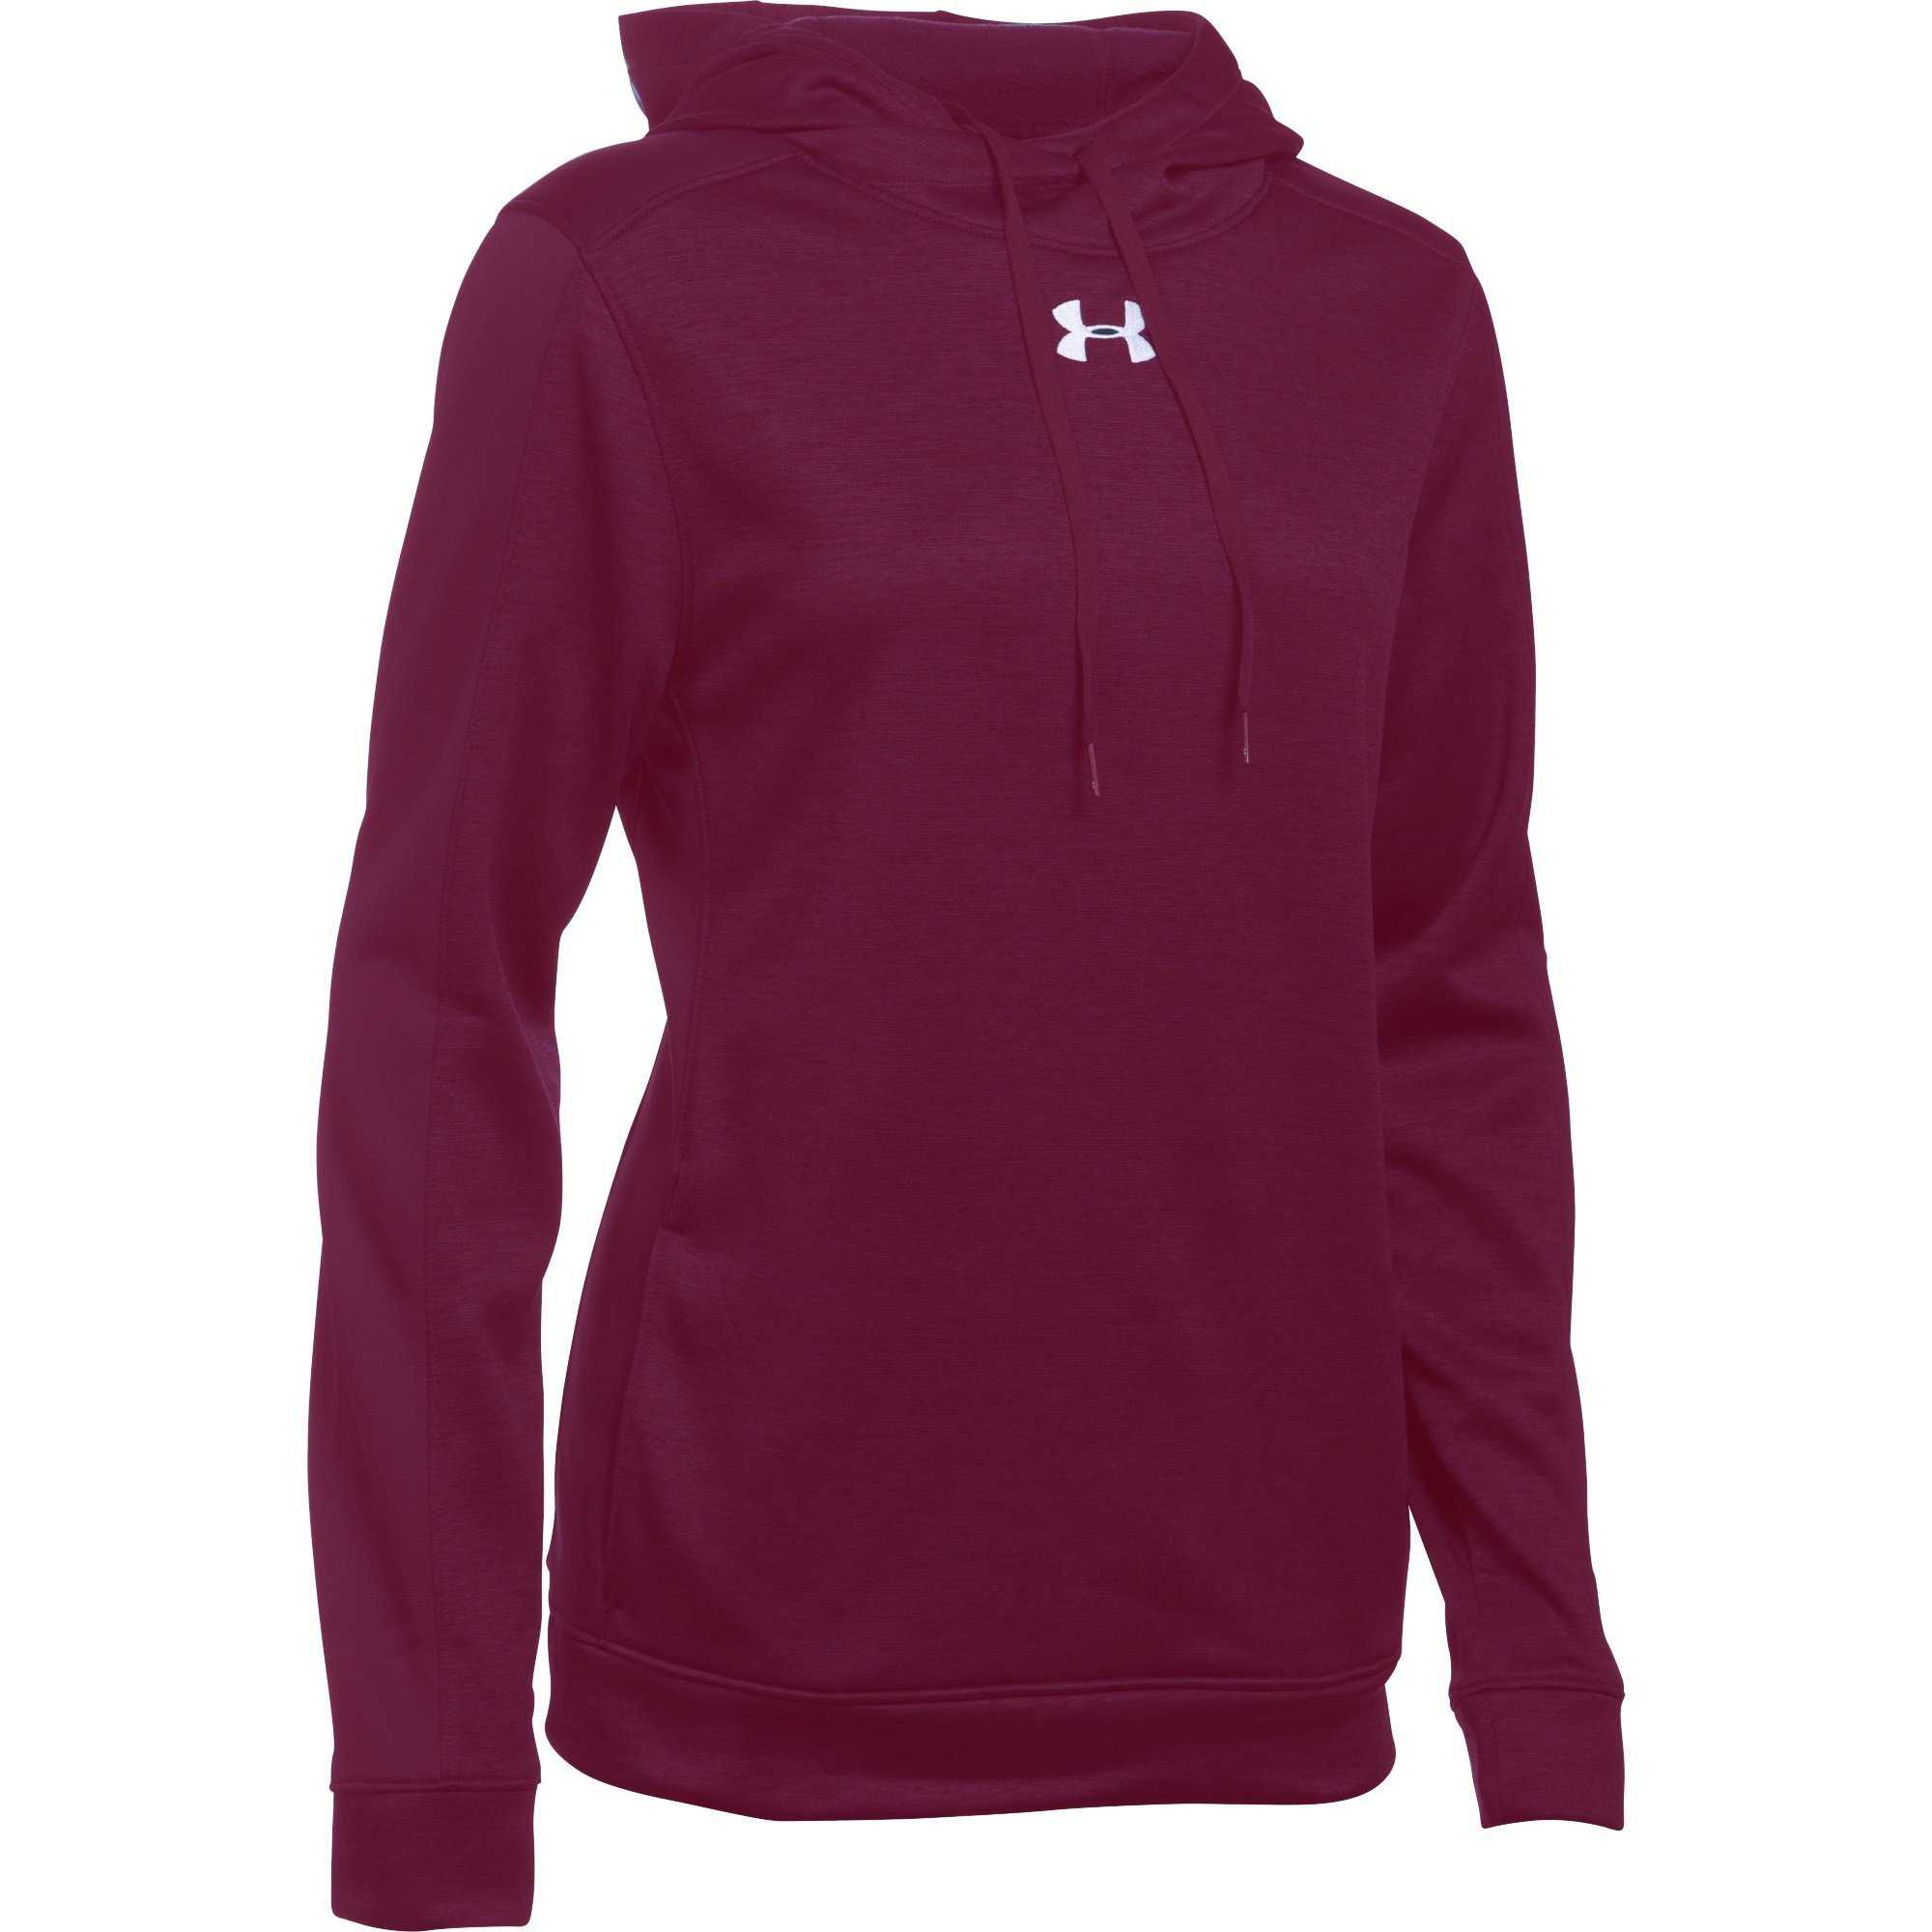 Under Armour Women's Novelty AF Hoody (Large, Maroon/White)